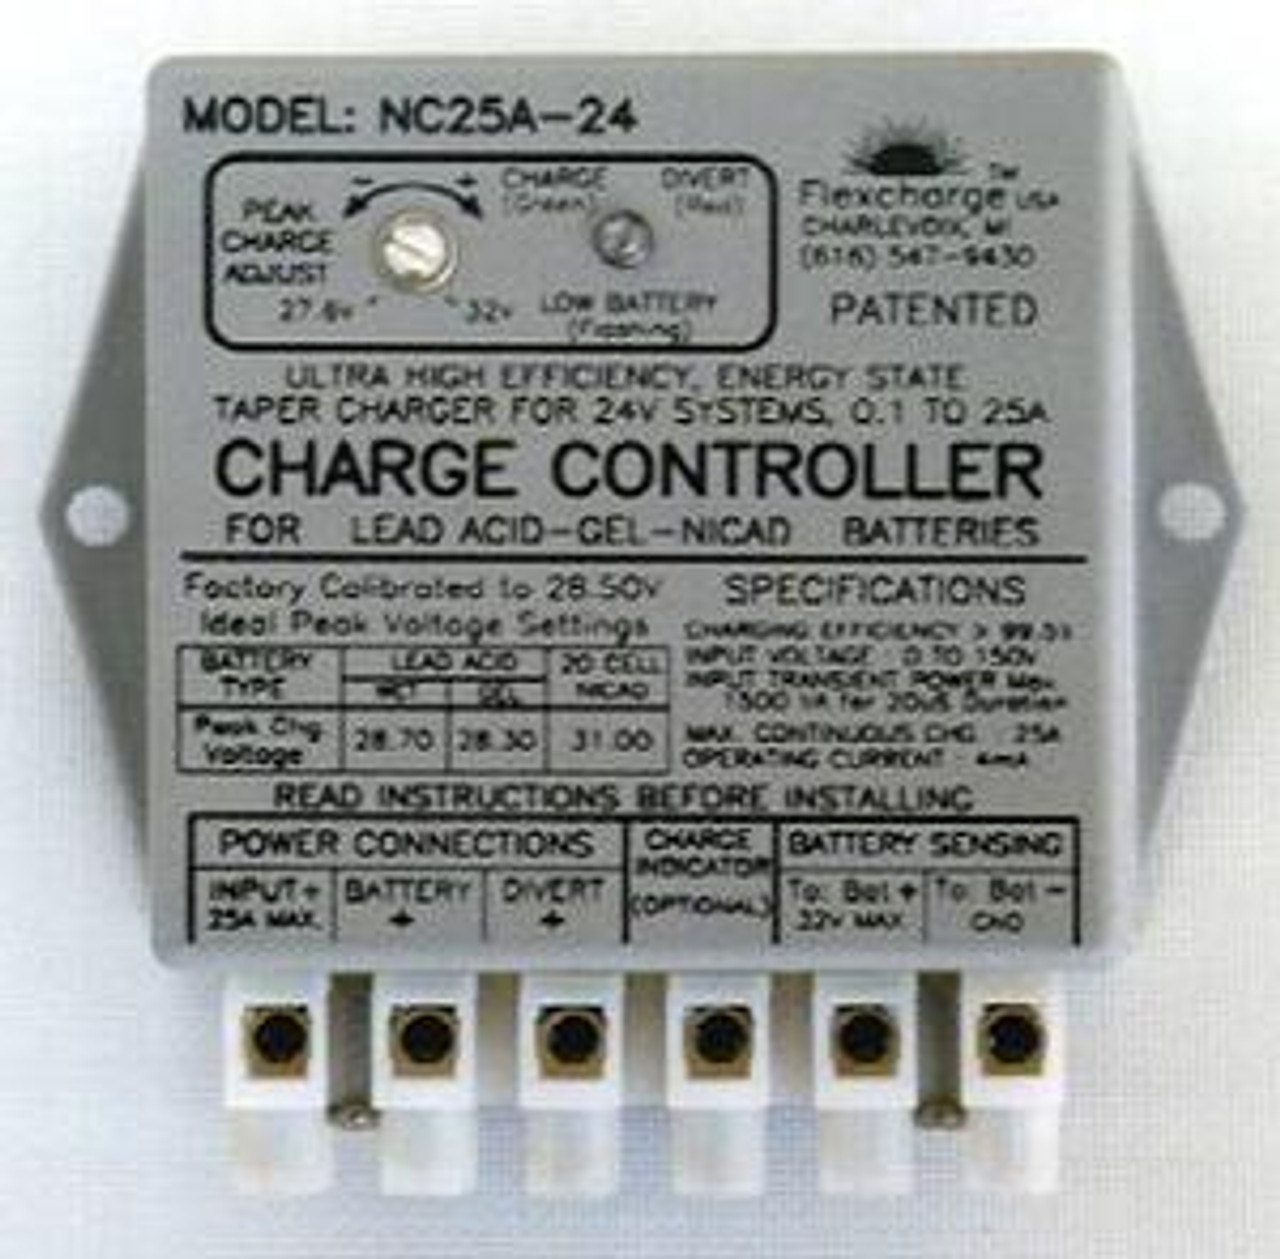 Flexcharge Solar Wind Hydro Turbine Charge Controller NC25A-24 Hybrid 12 Volt US